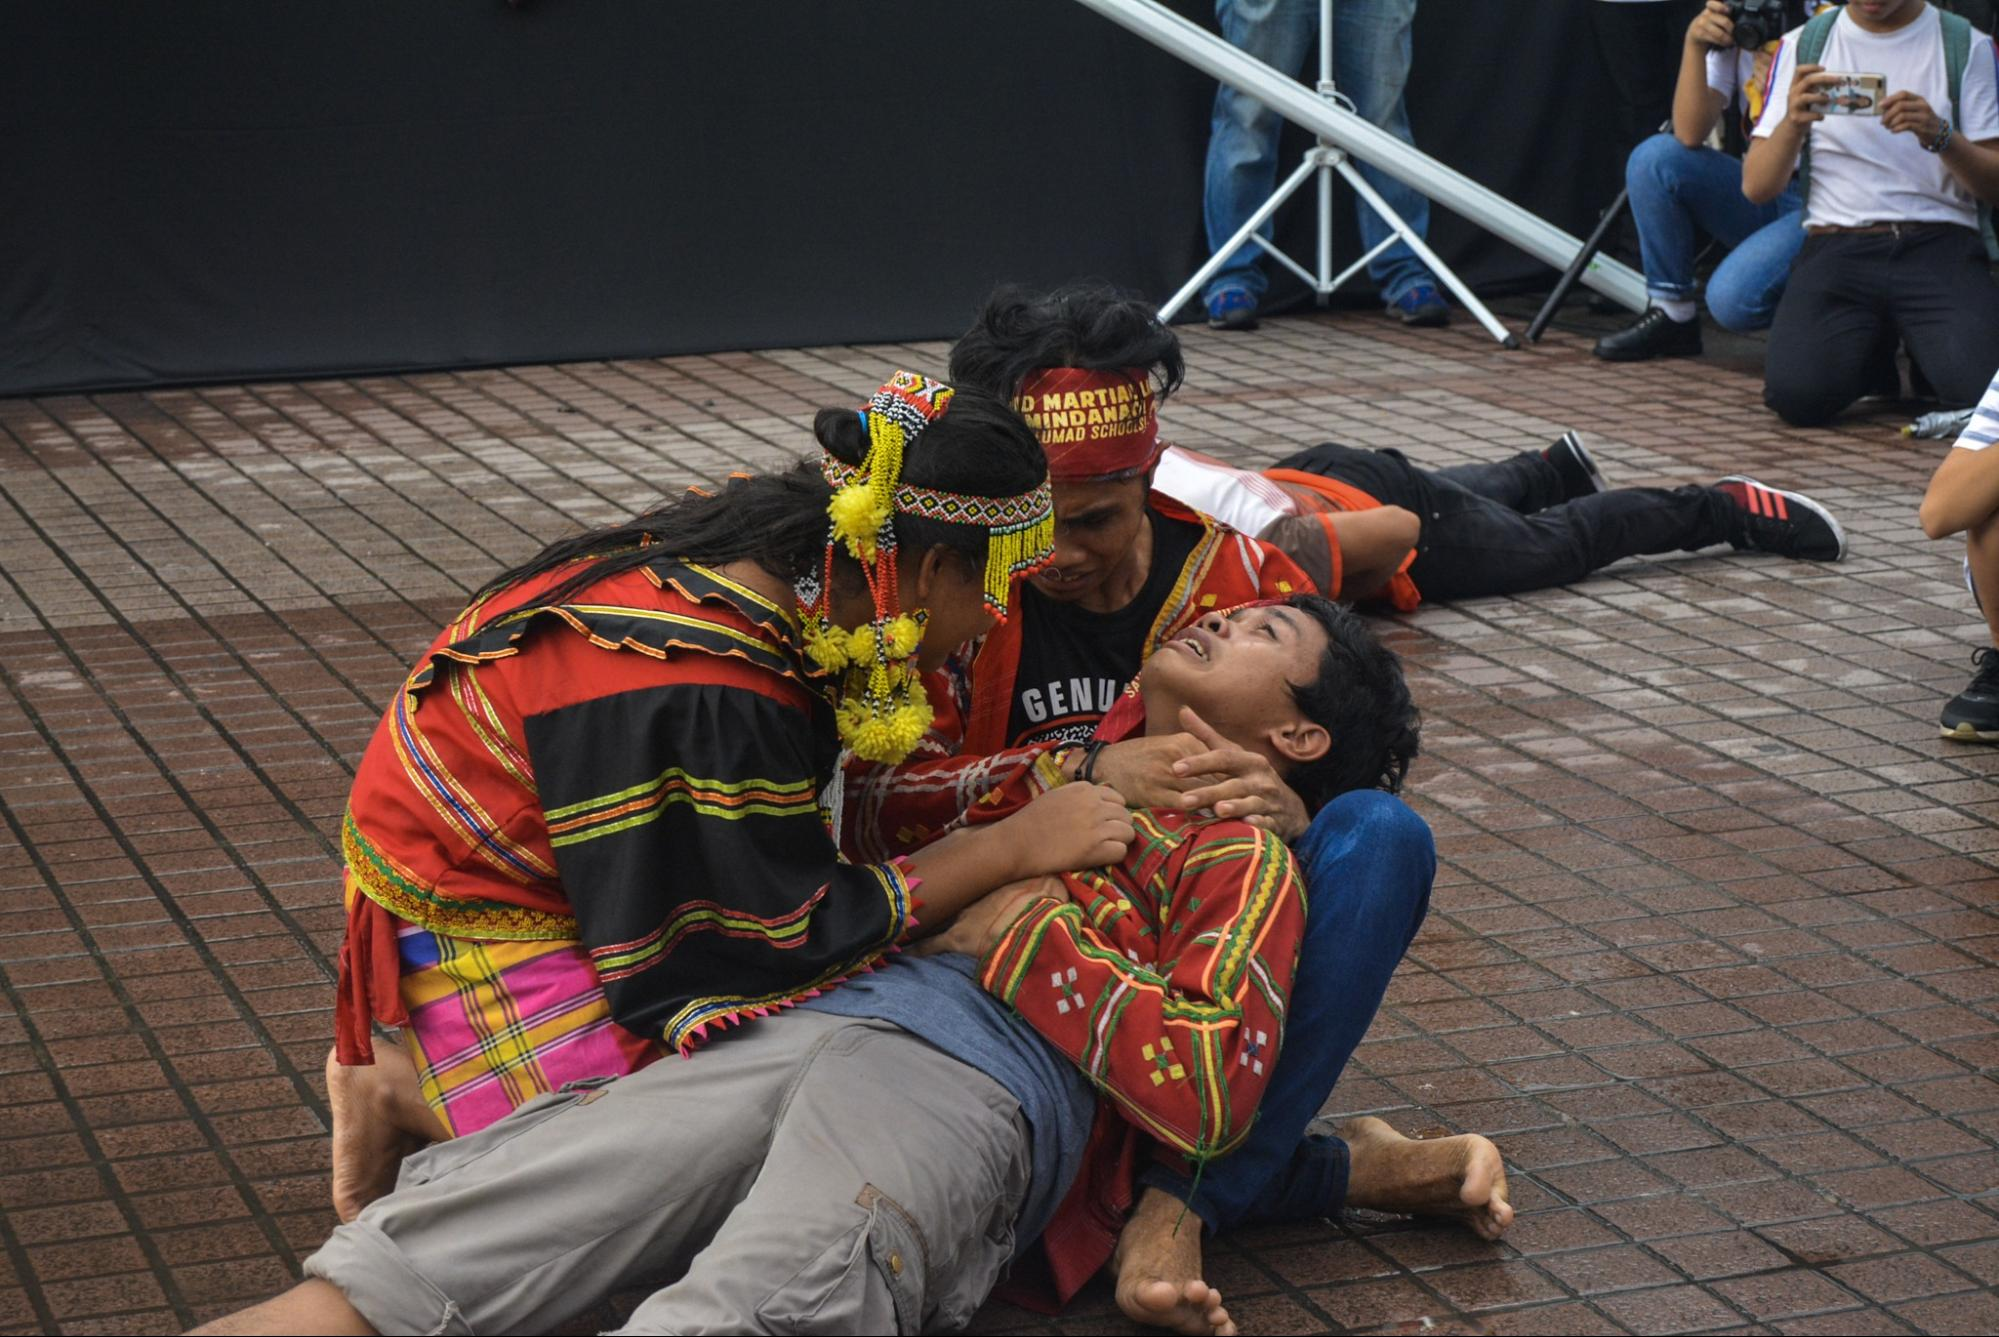 lumads creating a person, shot scene